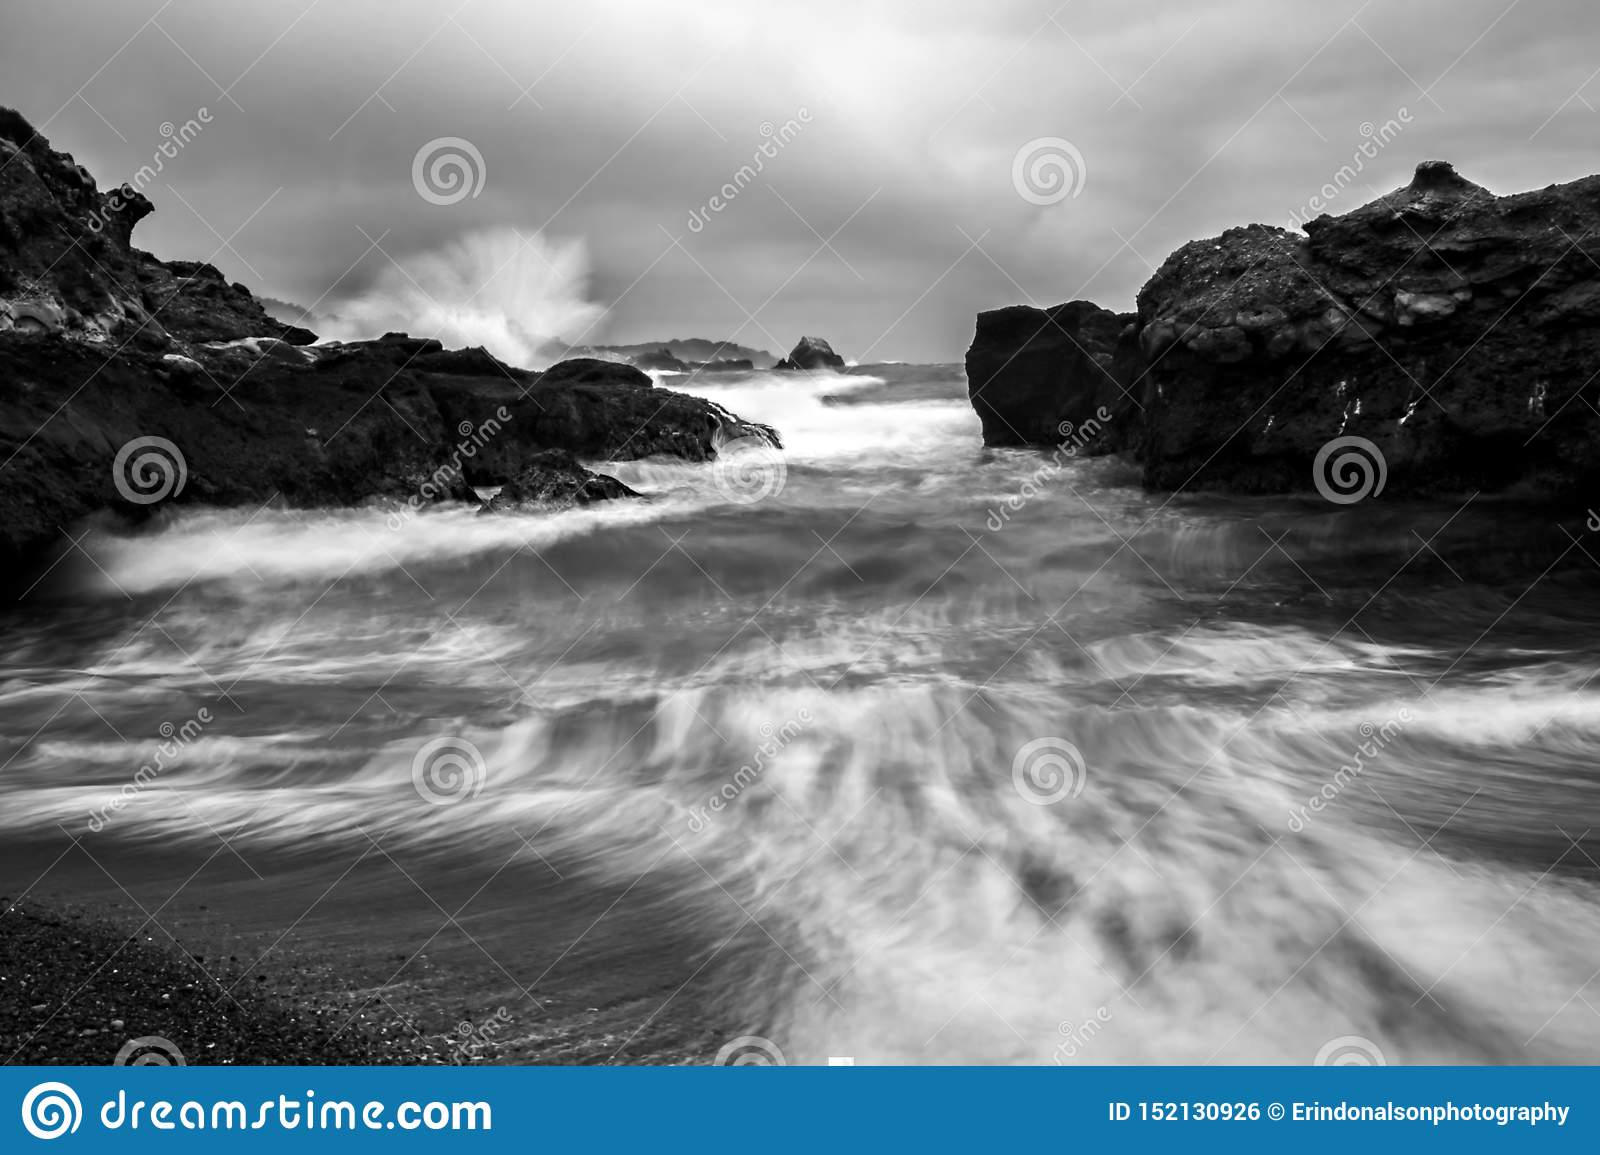 Ocean Spray and Surge in Black and White California Coastal Seascape